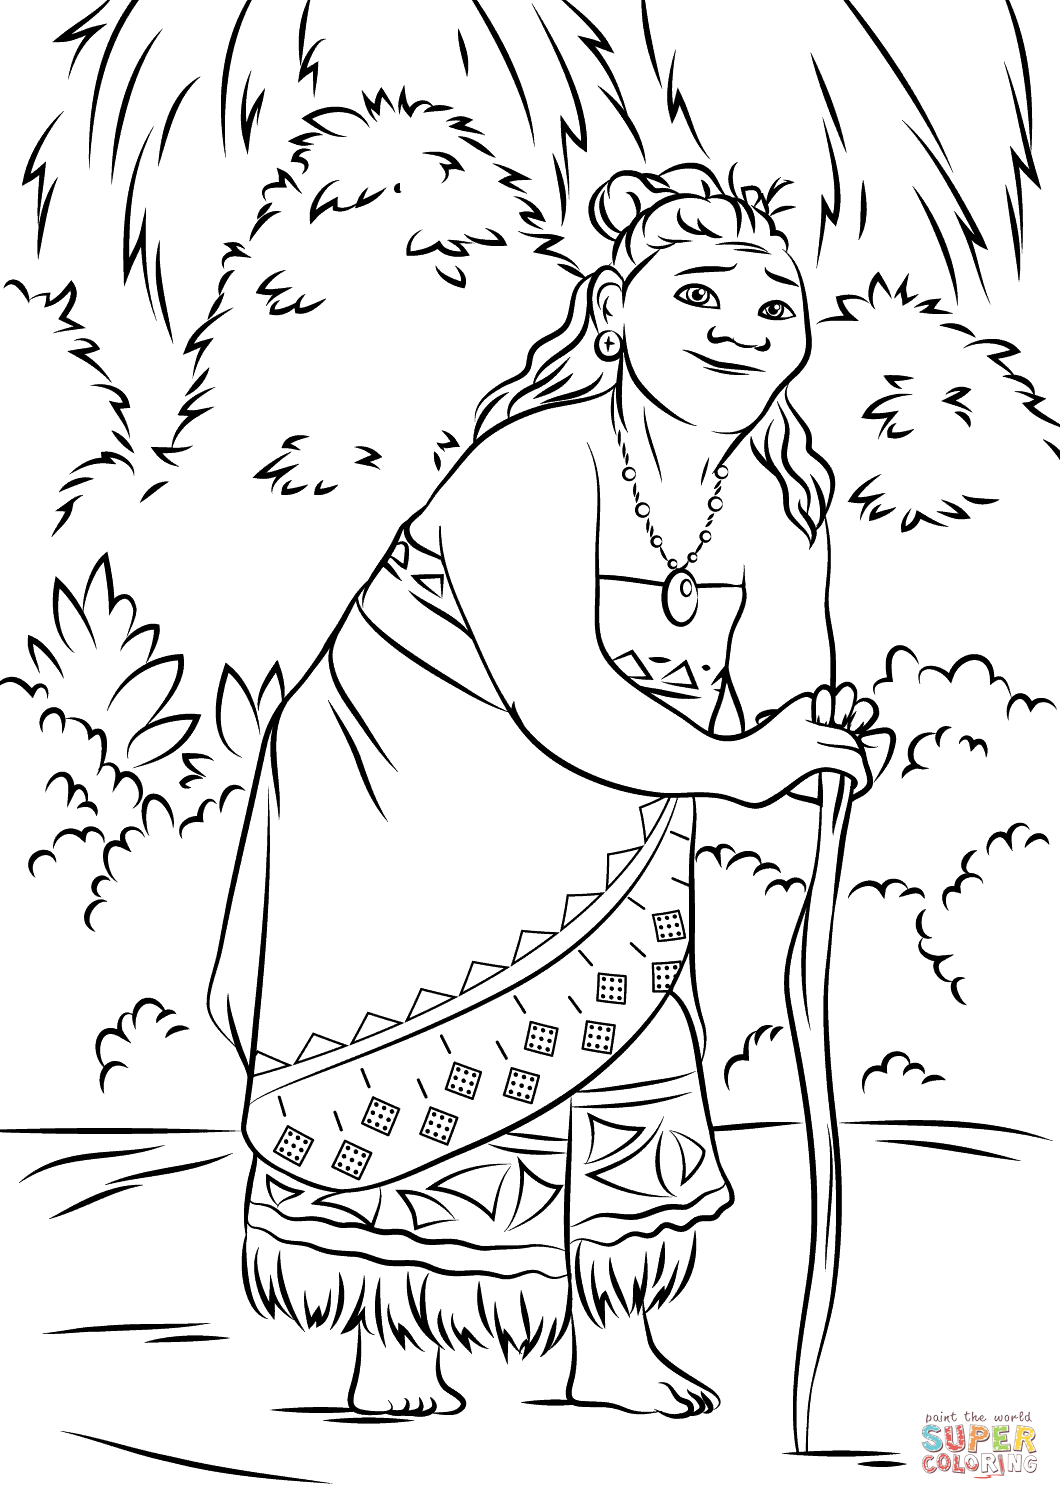 Gramma Tala from Moana Super Coloring Birthday party